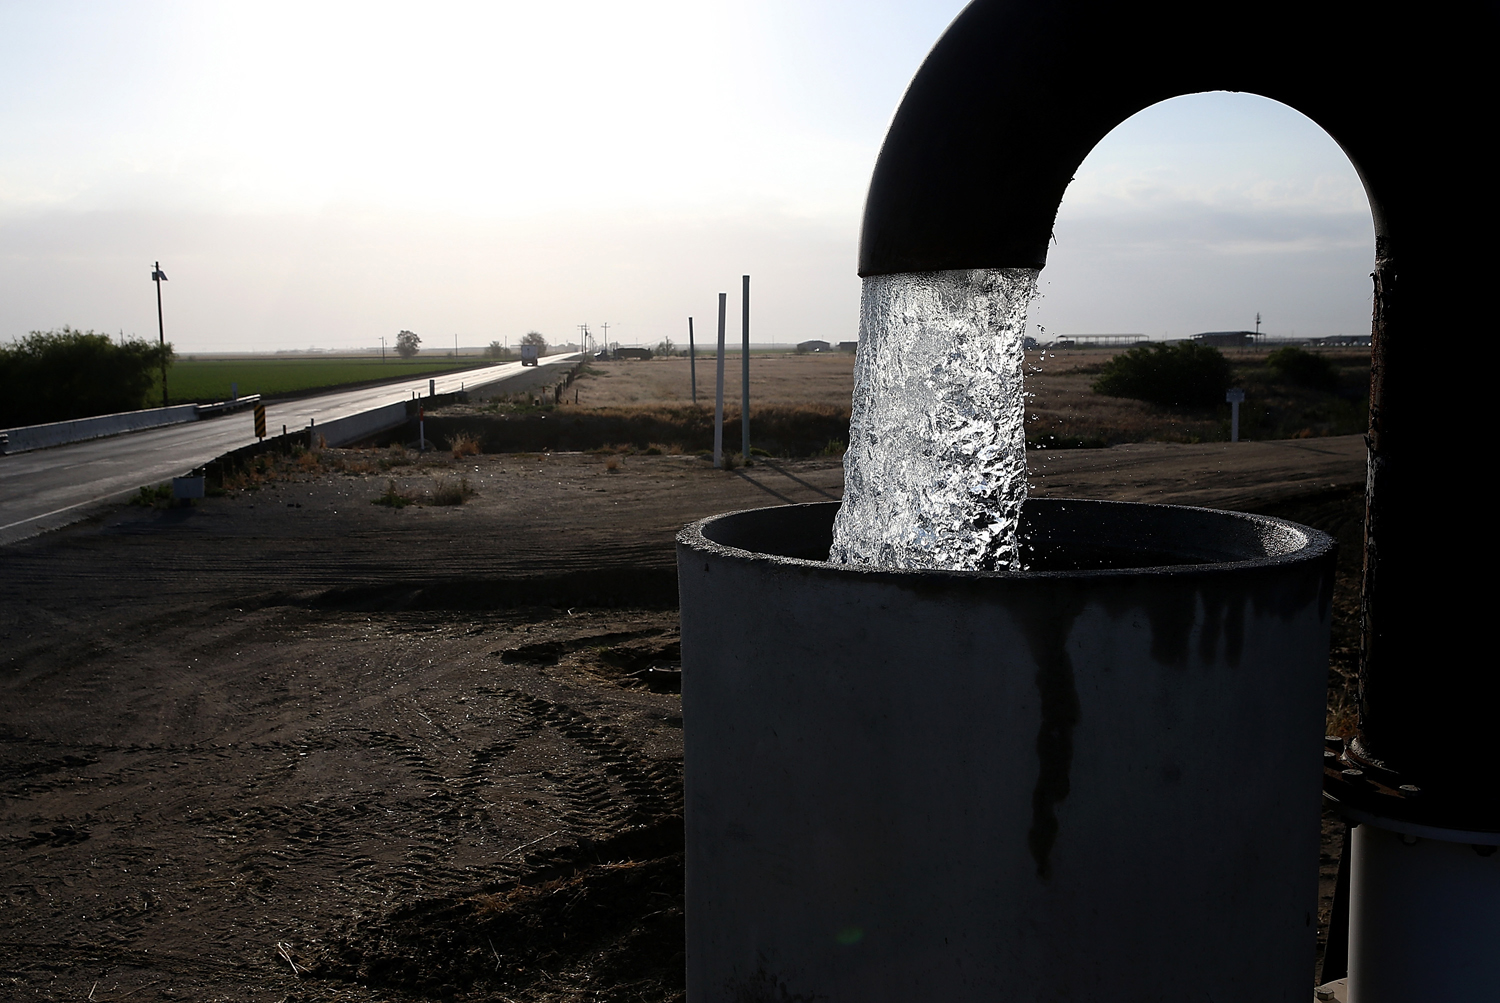 Well water is pumped from the ground on April 24, 2015 in Tulare, California.